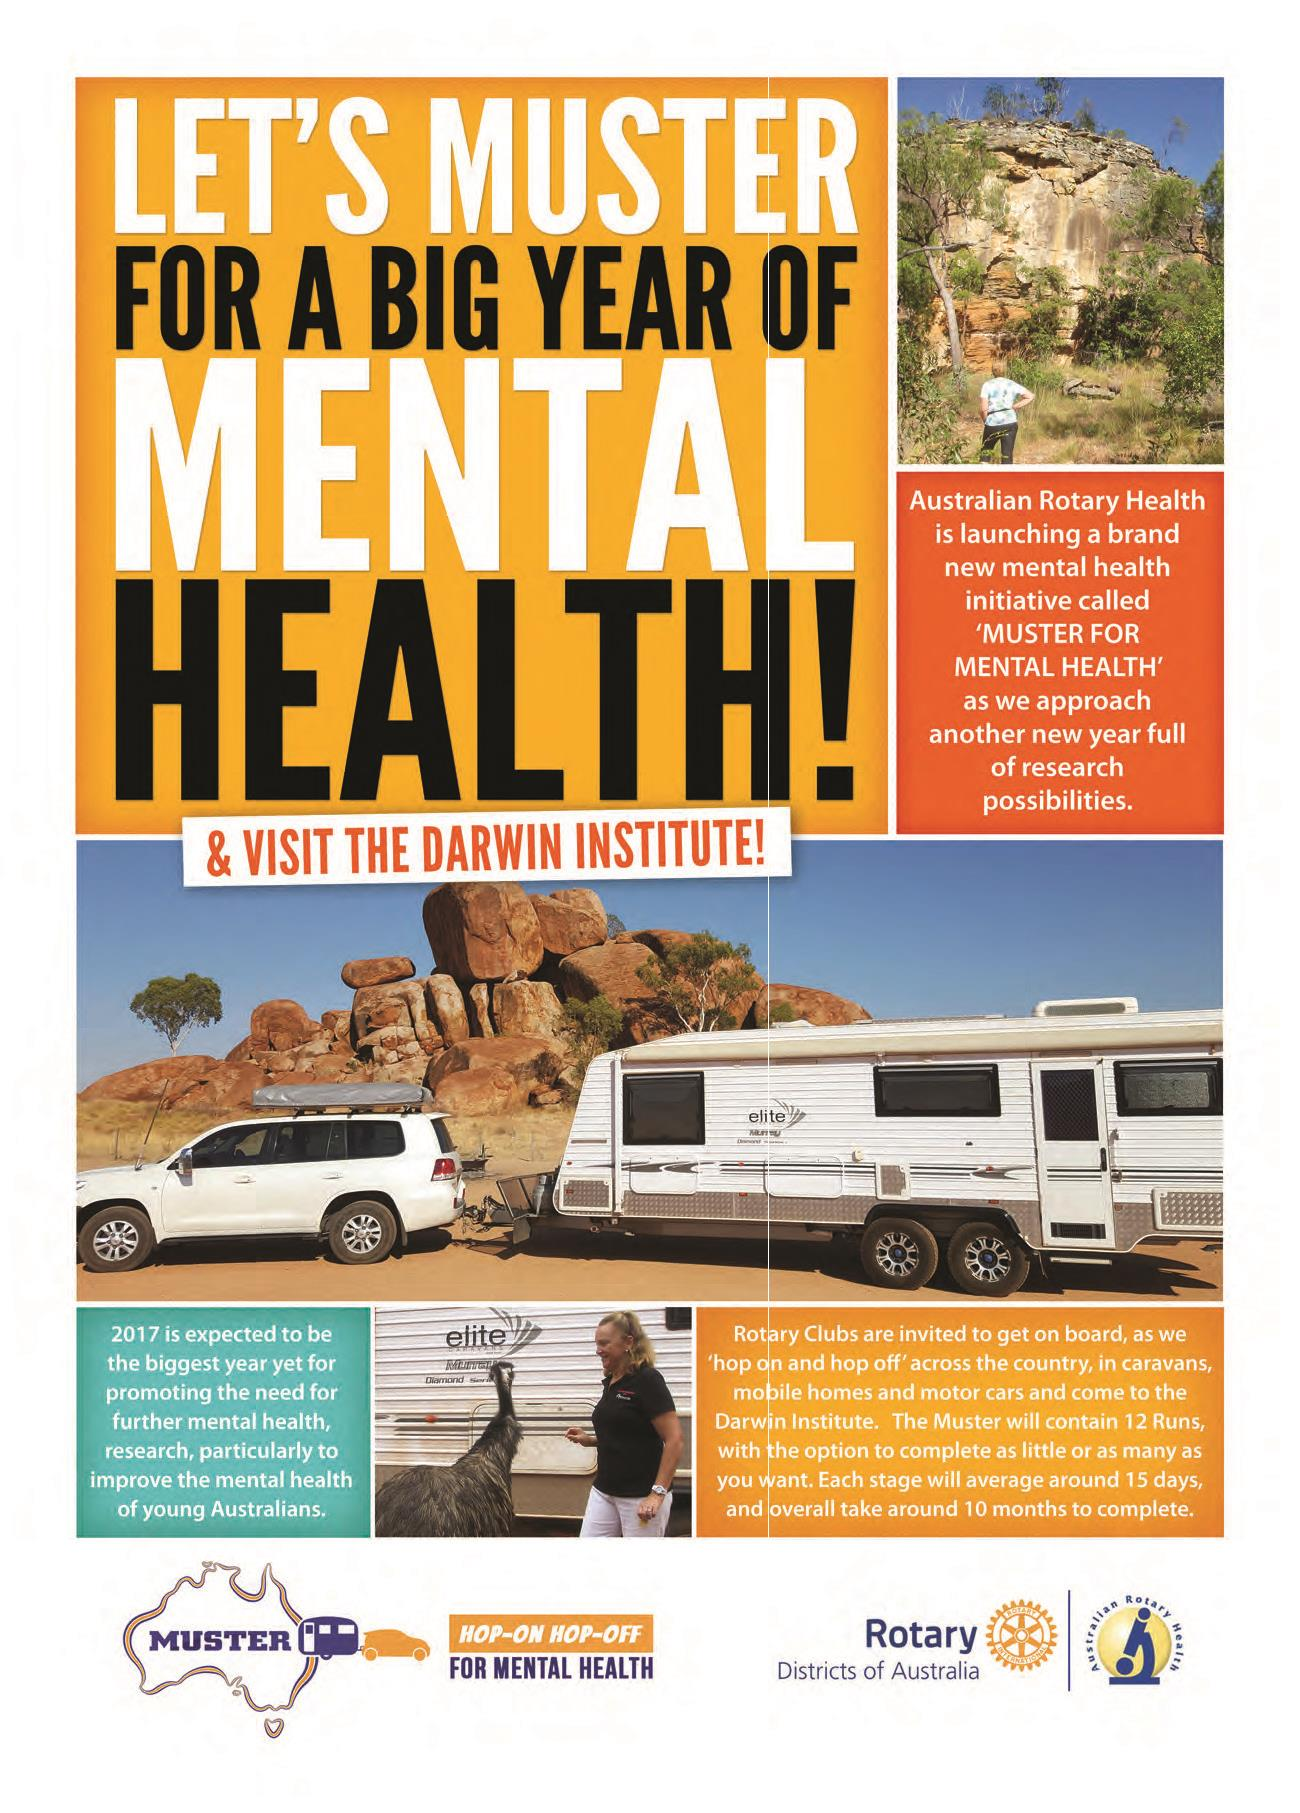 muster for mental health - Flyer Muster